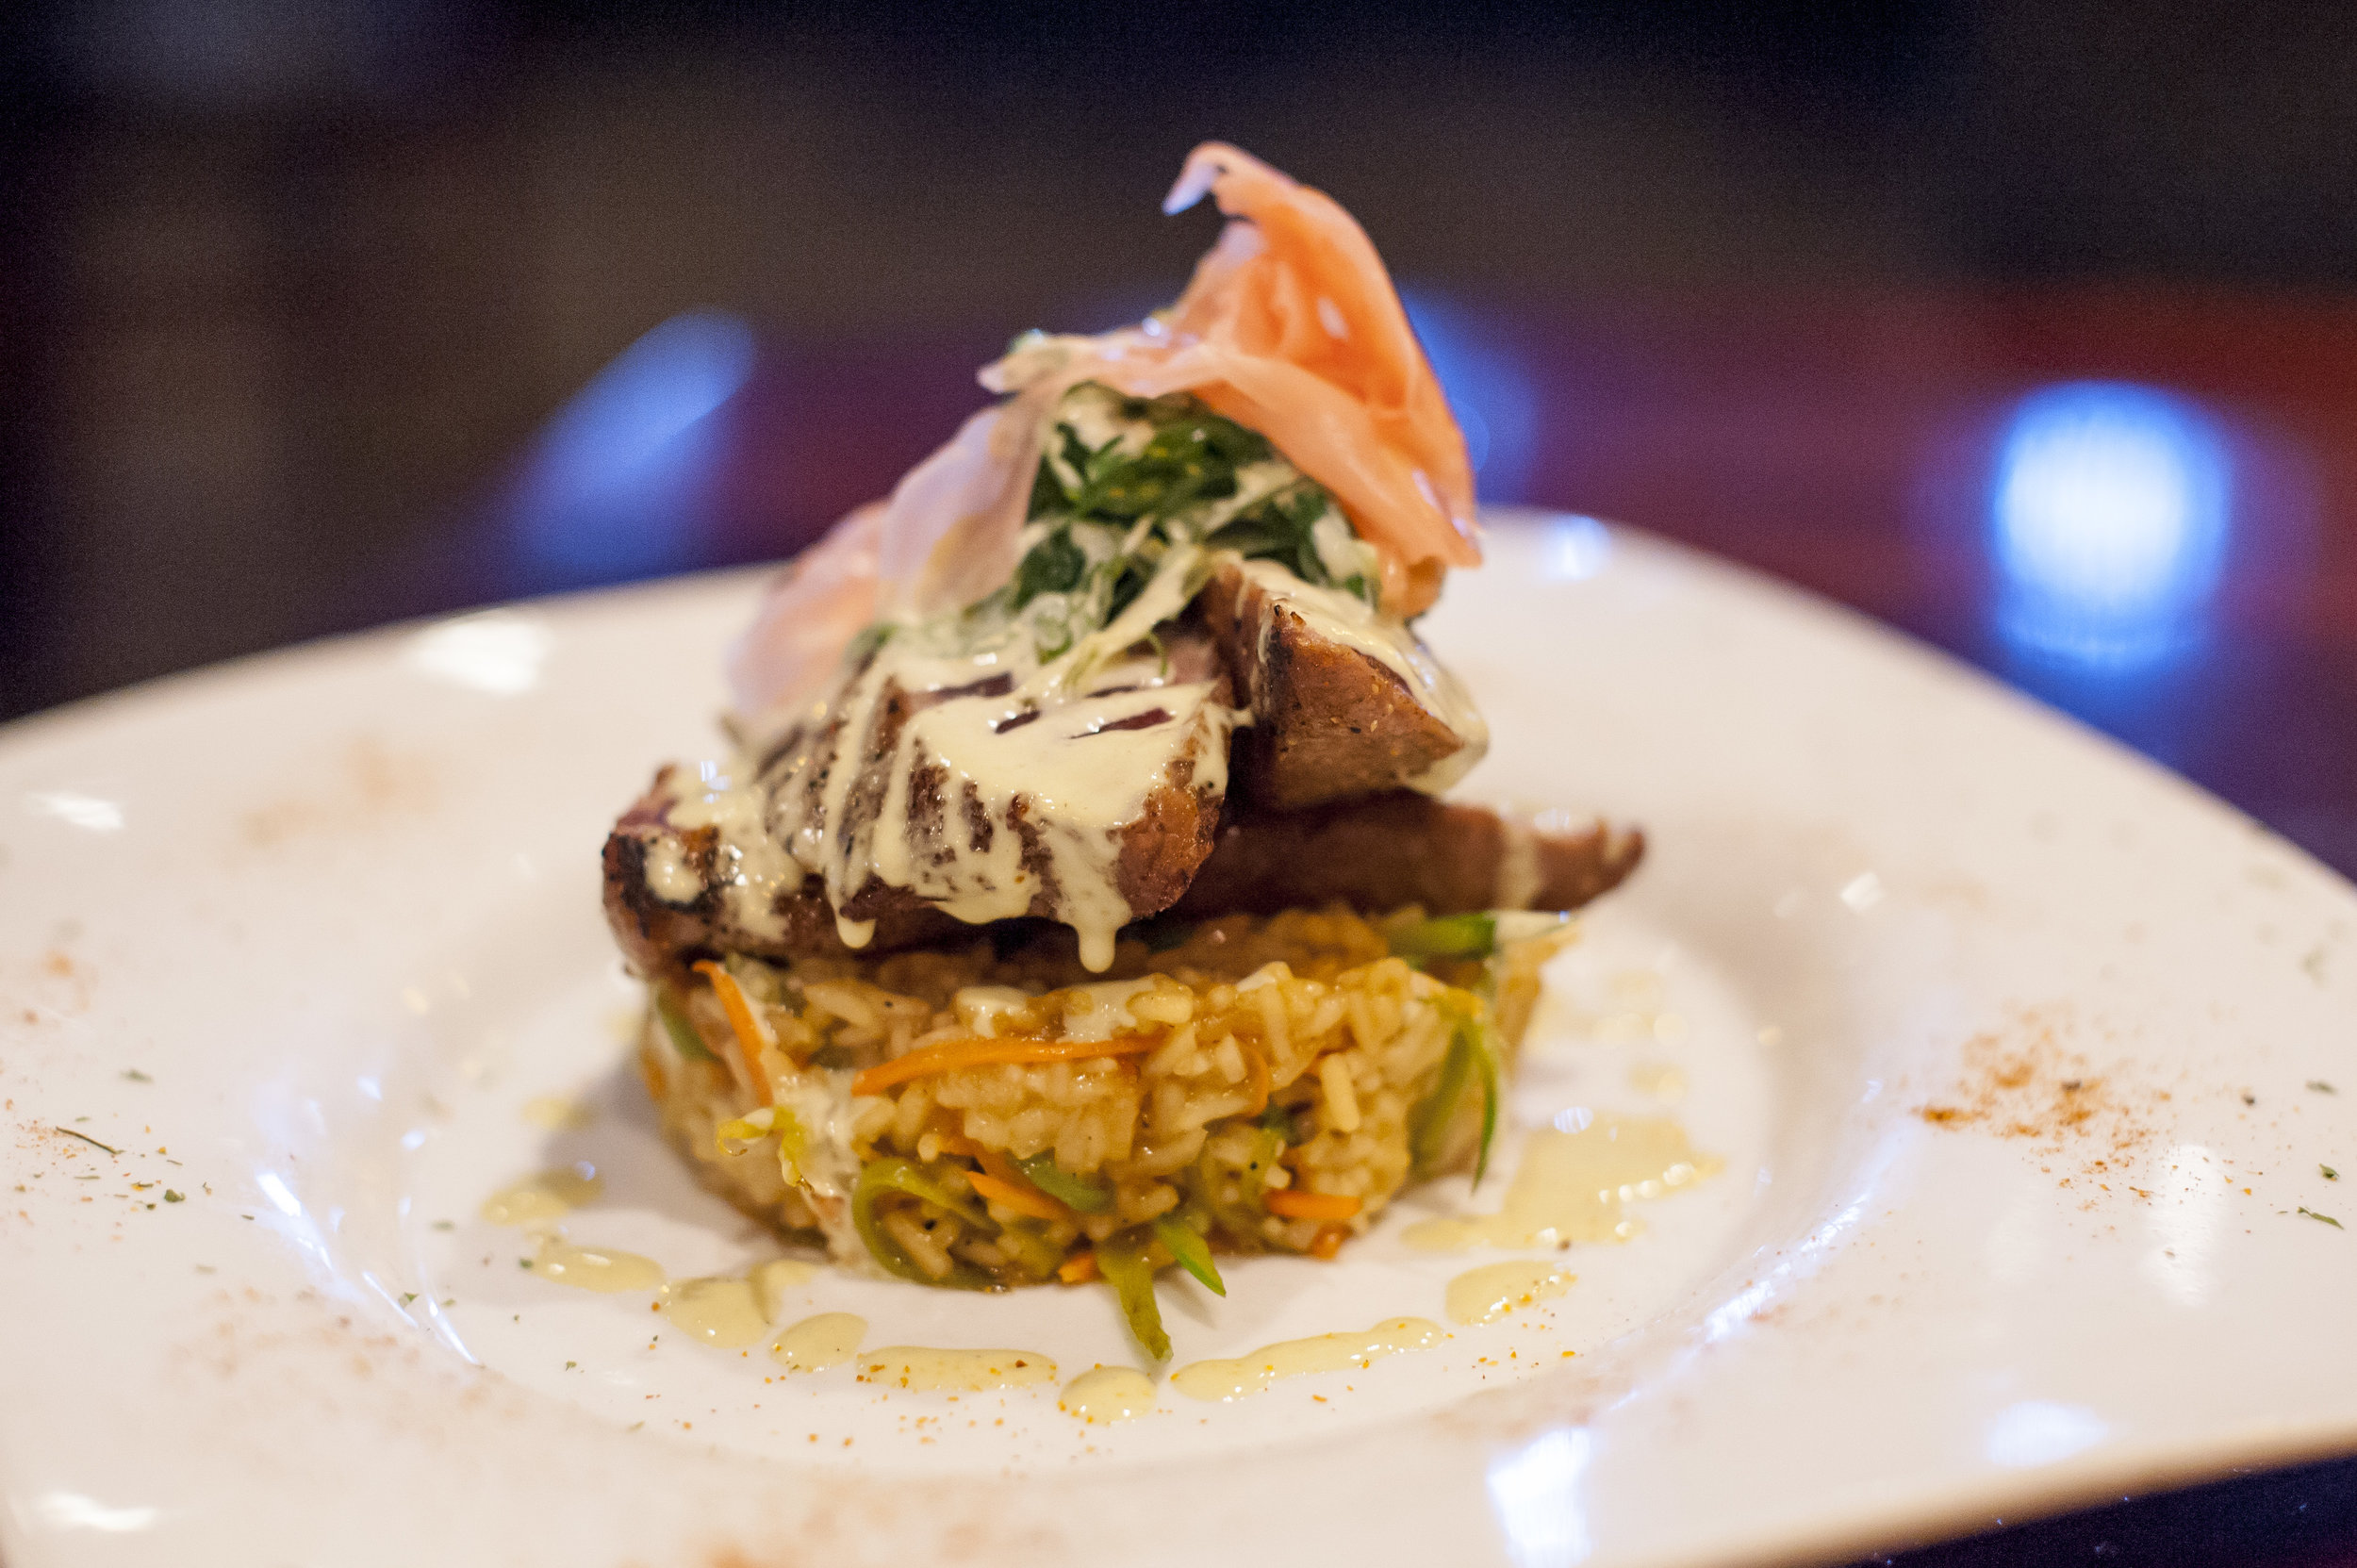 The Cajun Dusted Yellowfin Tuna pairs stir fried rice, seaweed salad, pickled ginger and wasabi aioli for a delicious cornucopia of Asian flavors.